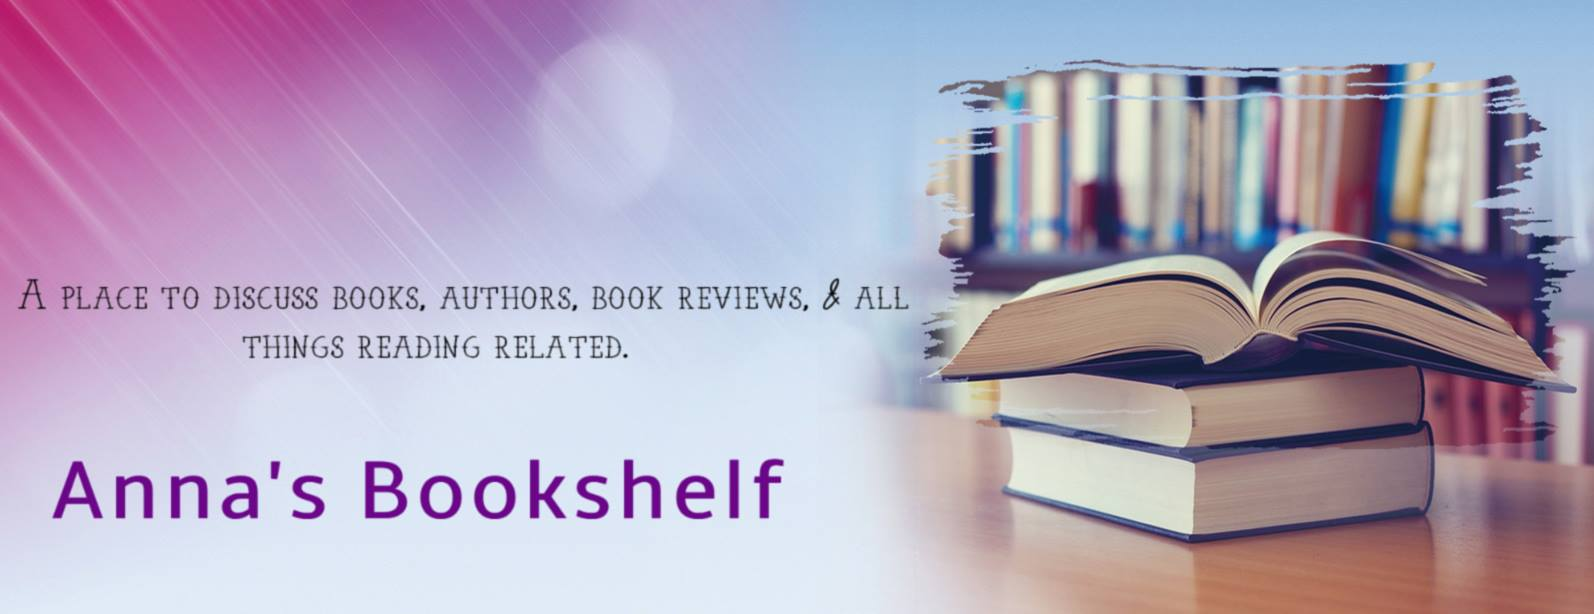 Follow Anna's Bookshelf on Facebook!